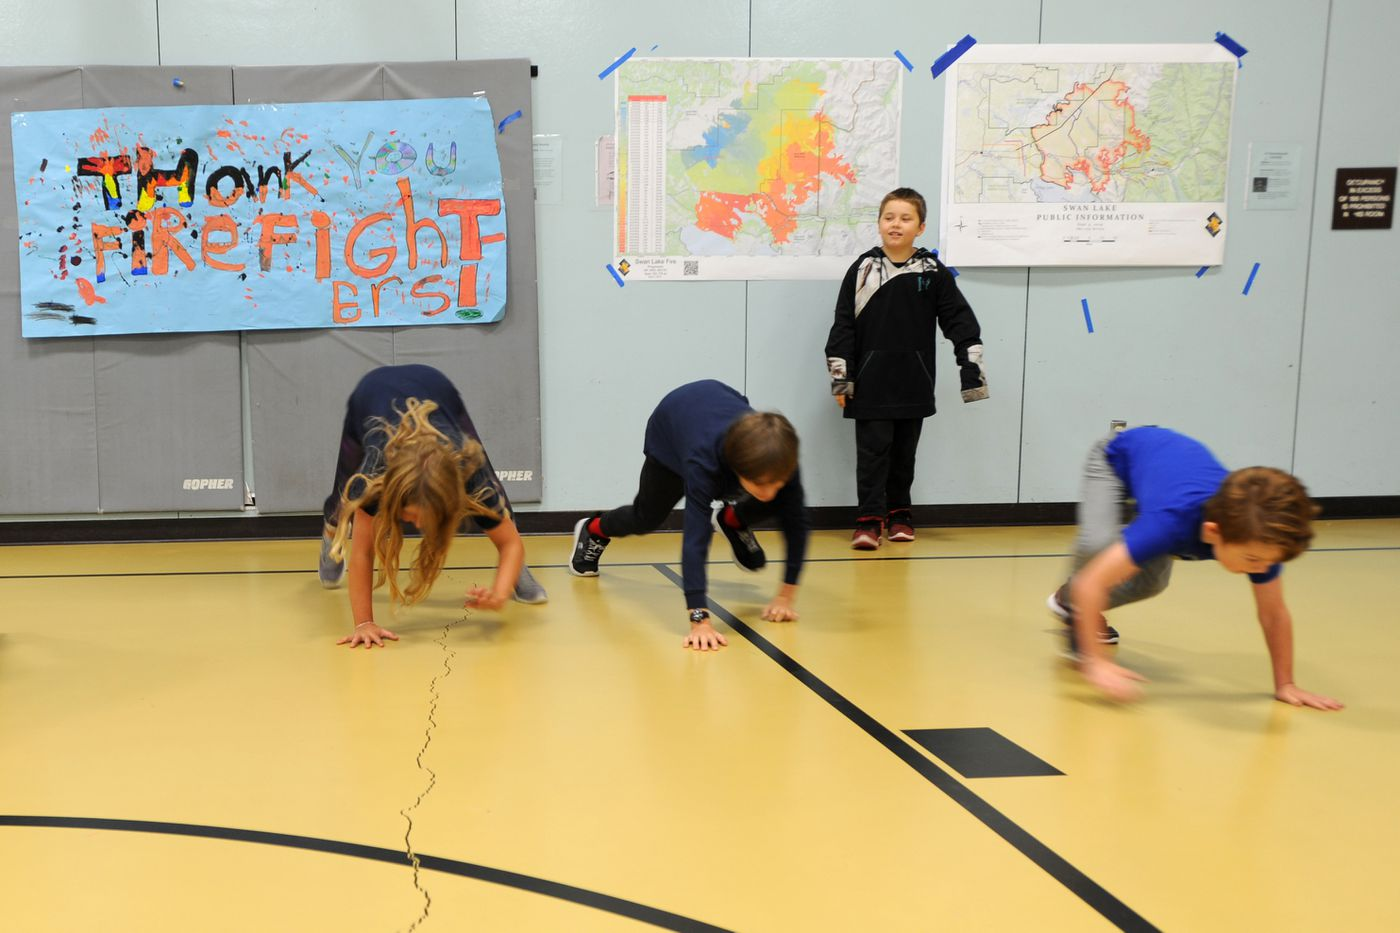 Students at the Cooper Landing school exercise in the gym Sept. 6, 2019. The school has been used for community meetings so collections of maps, as well as thank-you signs, adorn the walls. (Anne Raup / ADN)